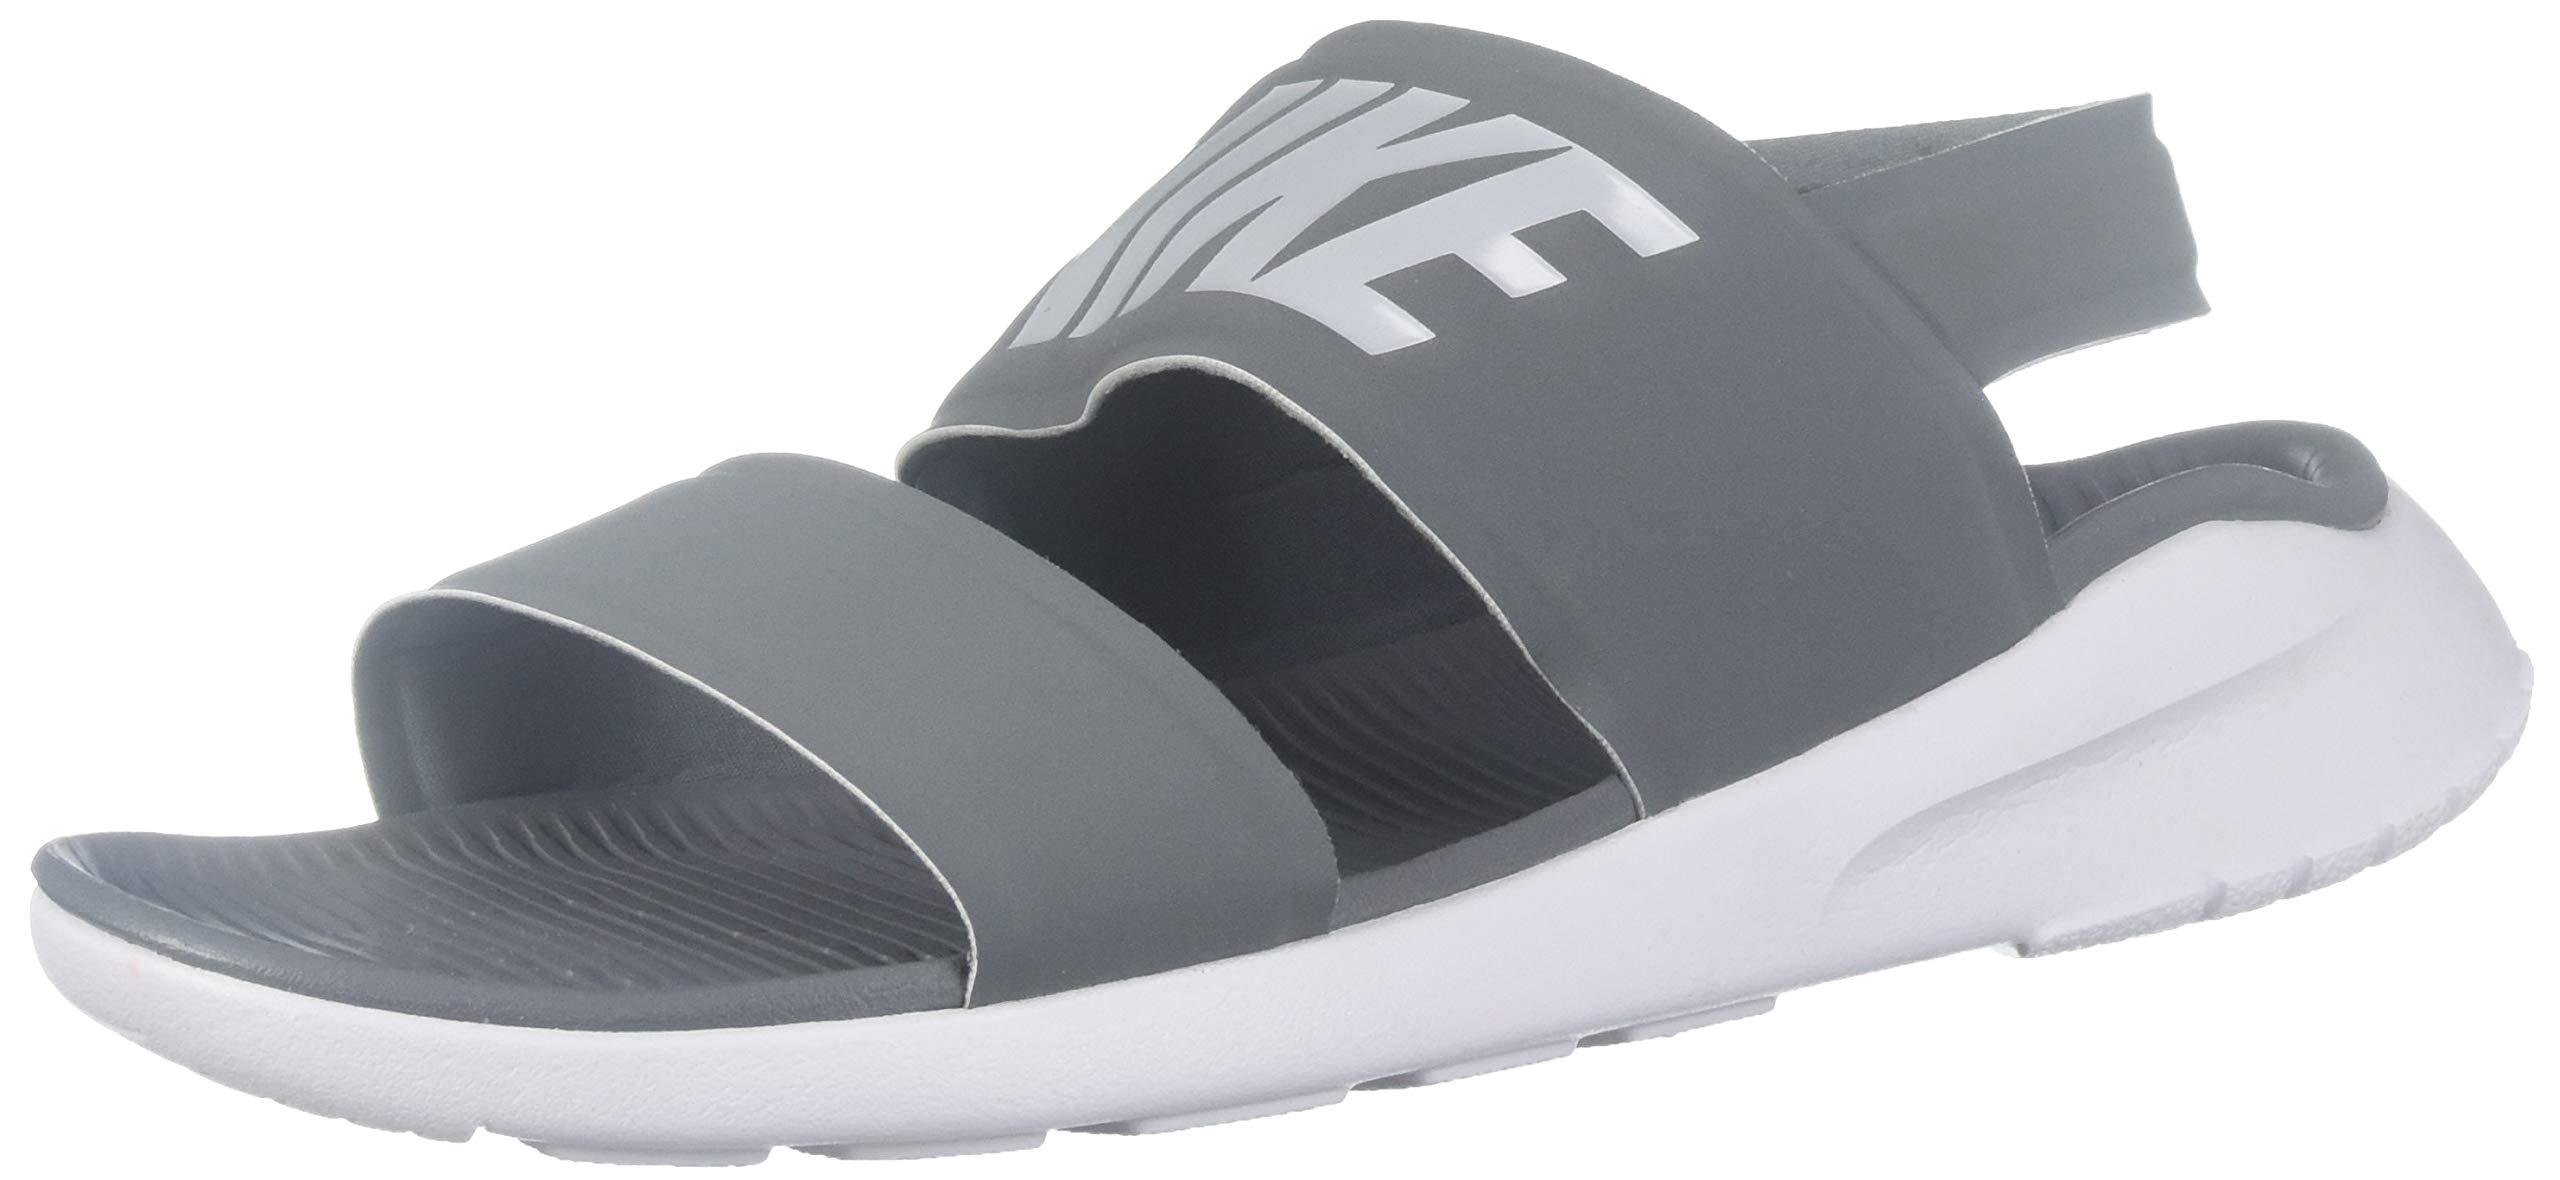 b6c6a560caf Galleon - Nike Womens Tanjun Sandal Cool Grey/Pure Platinum/White Size 5 B M